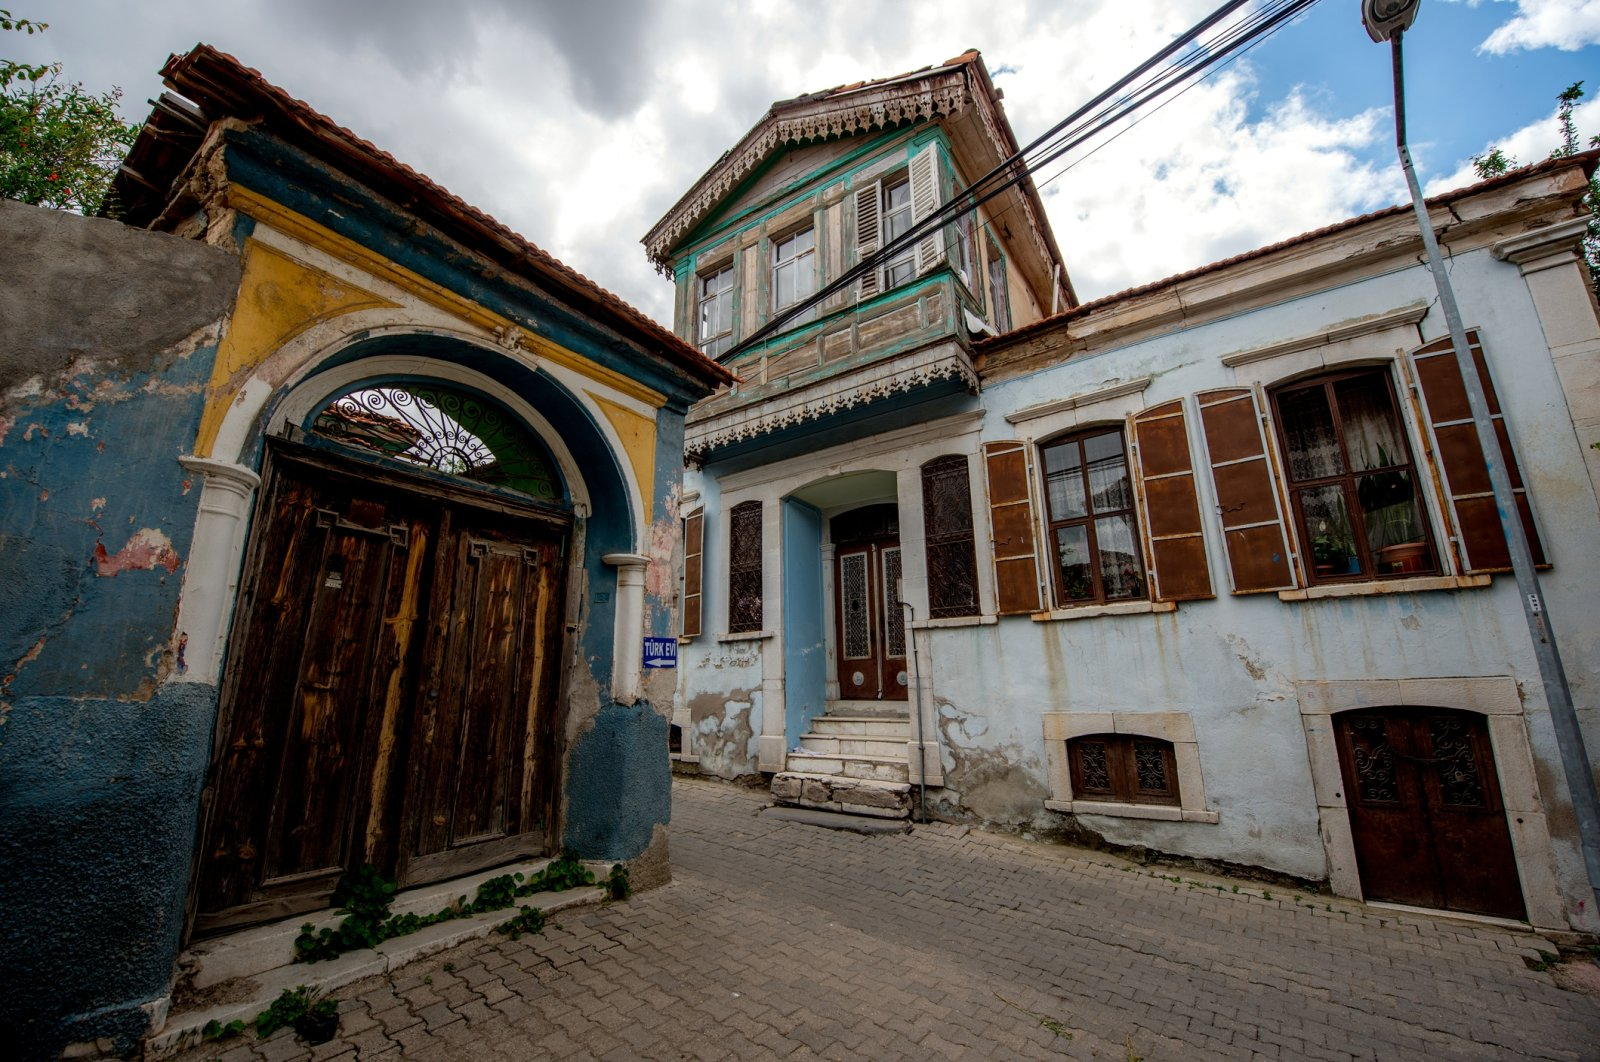 Some historical Ottoman houses in the town of Kula, Manisa, western Turkey.